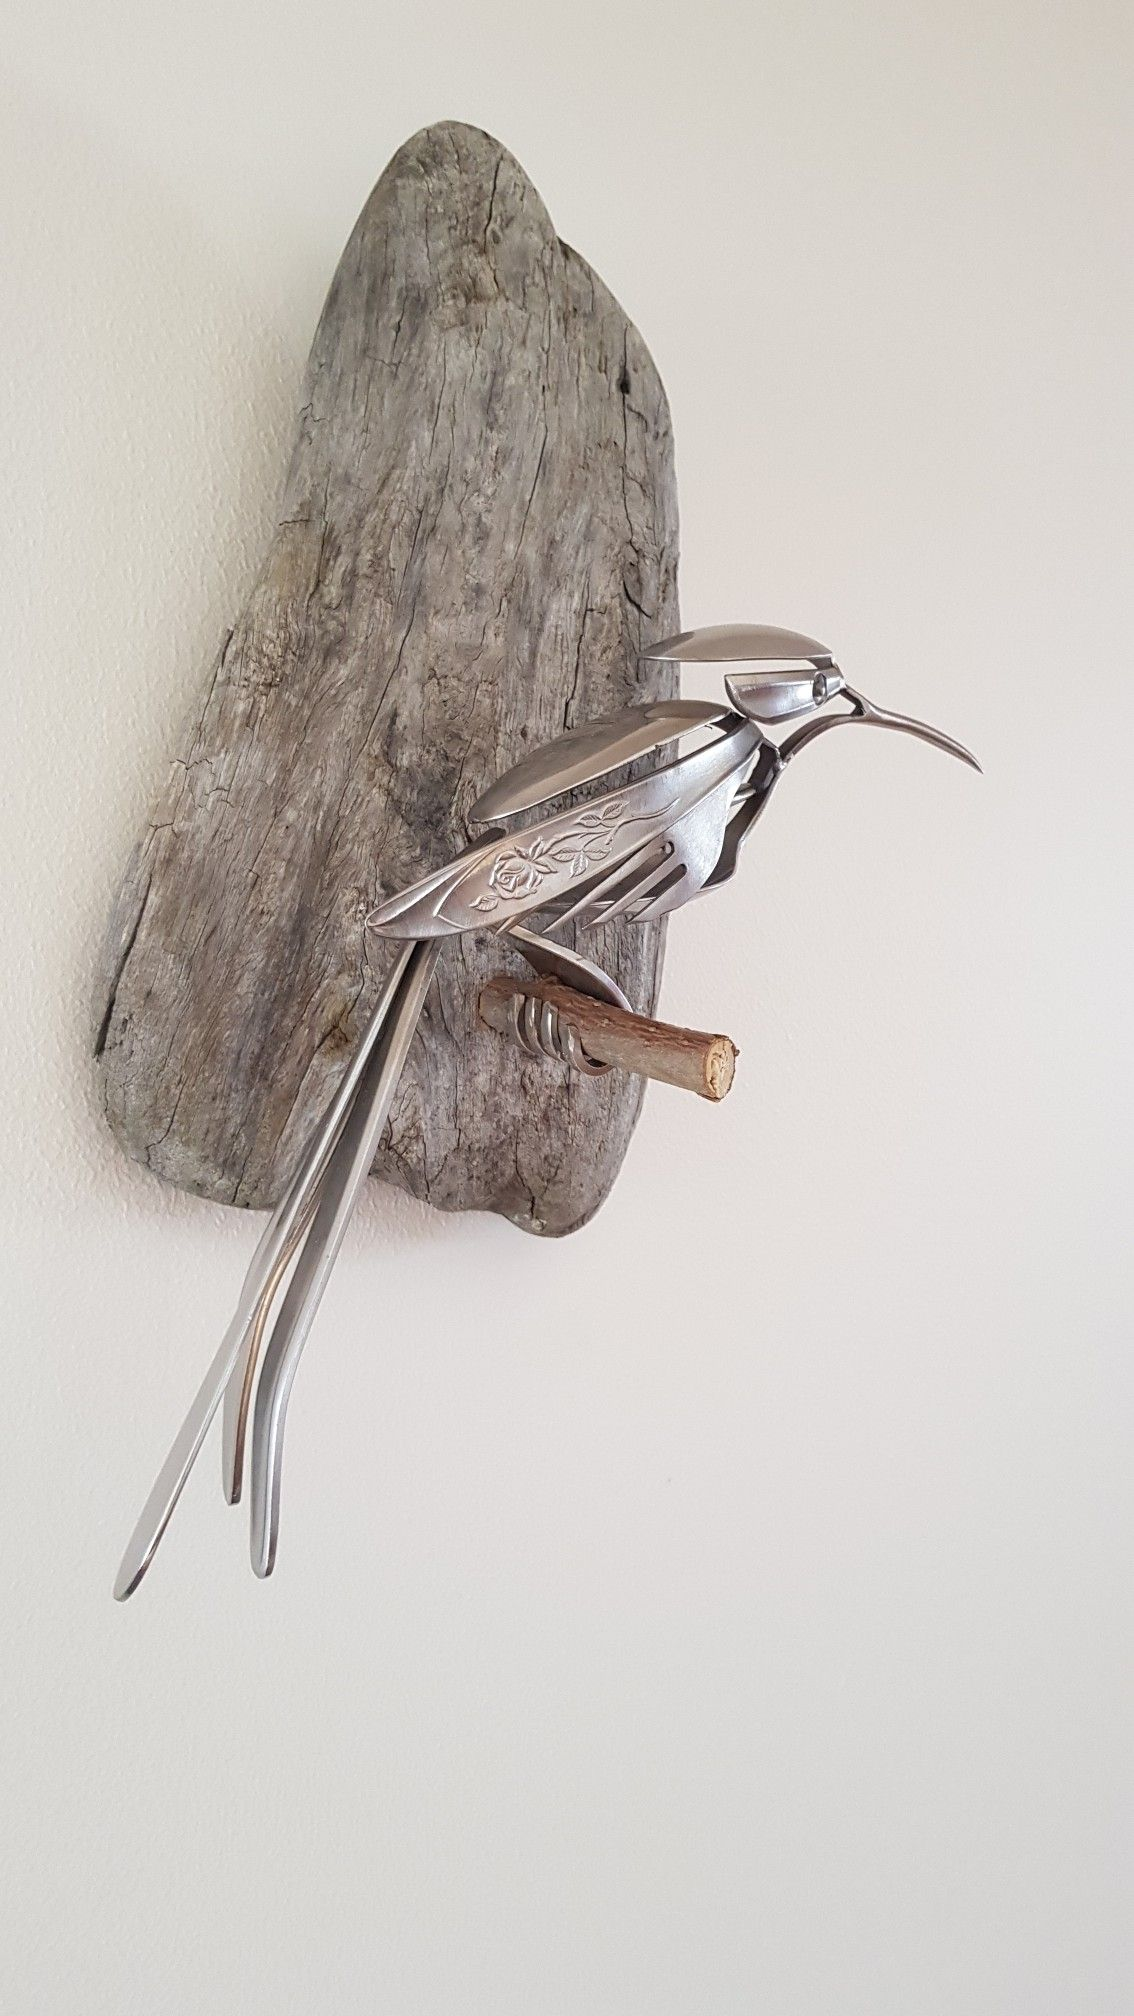 Bird made from recycled stainless steel spoons and forks